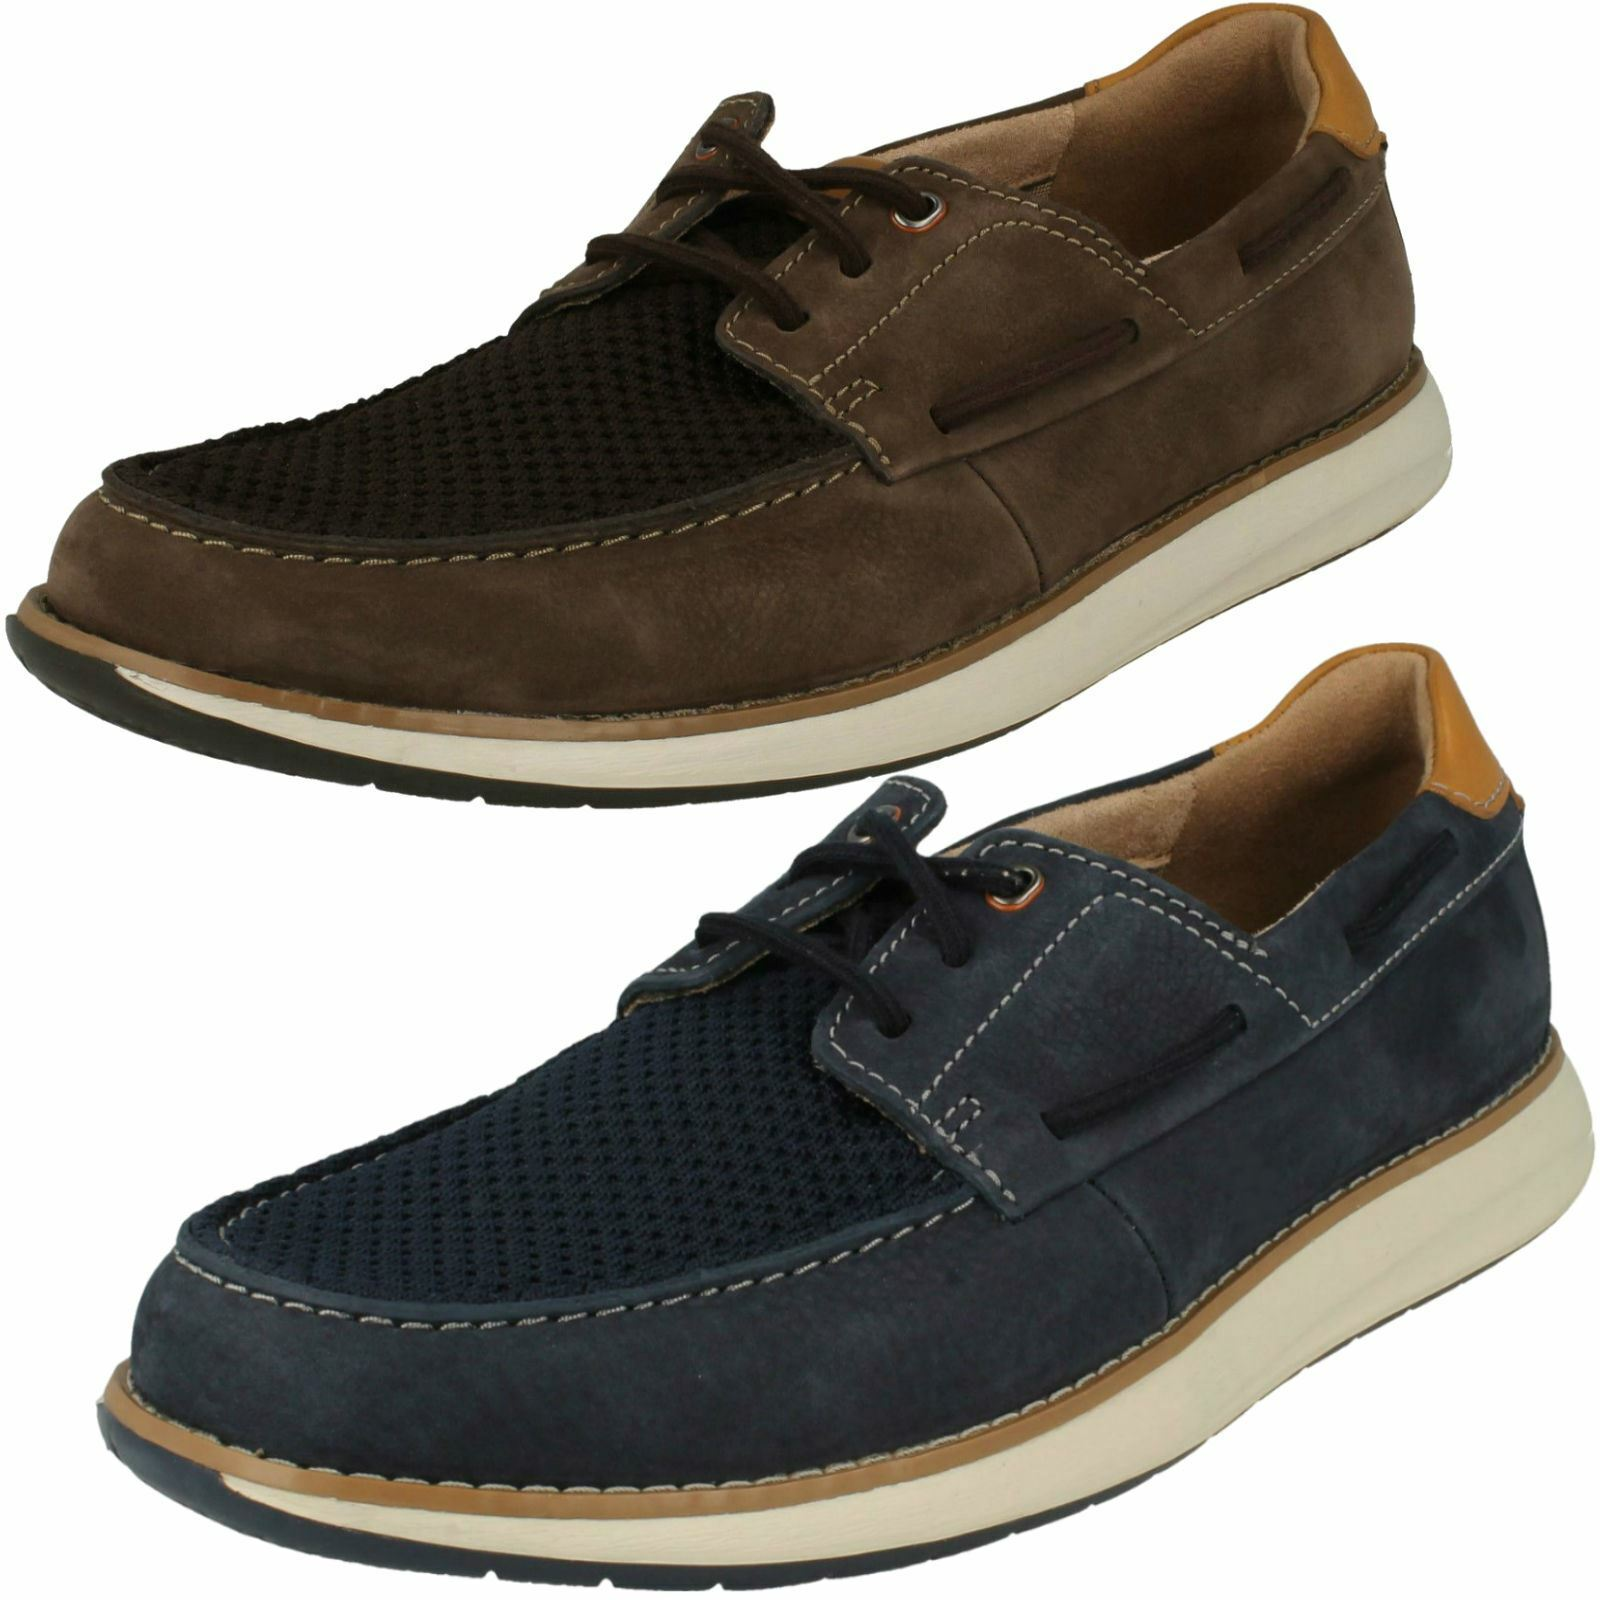 Mens Clarks Unstructured Lace Up Leather & Textile Deck shoes Un Pilot Lace